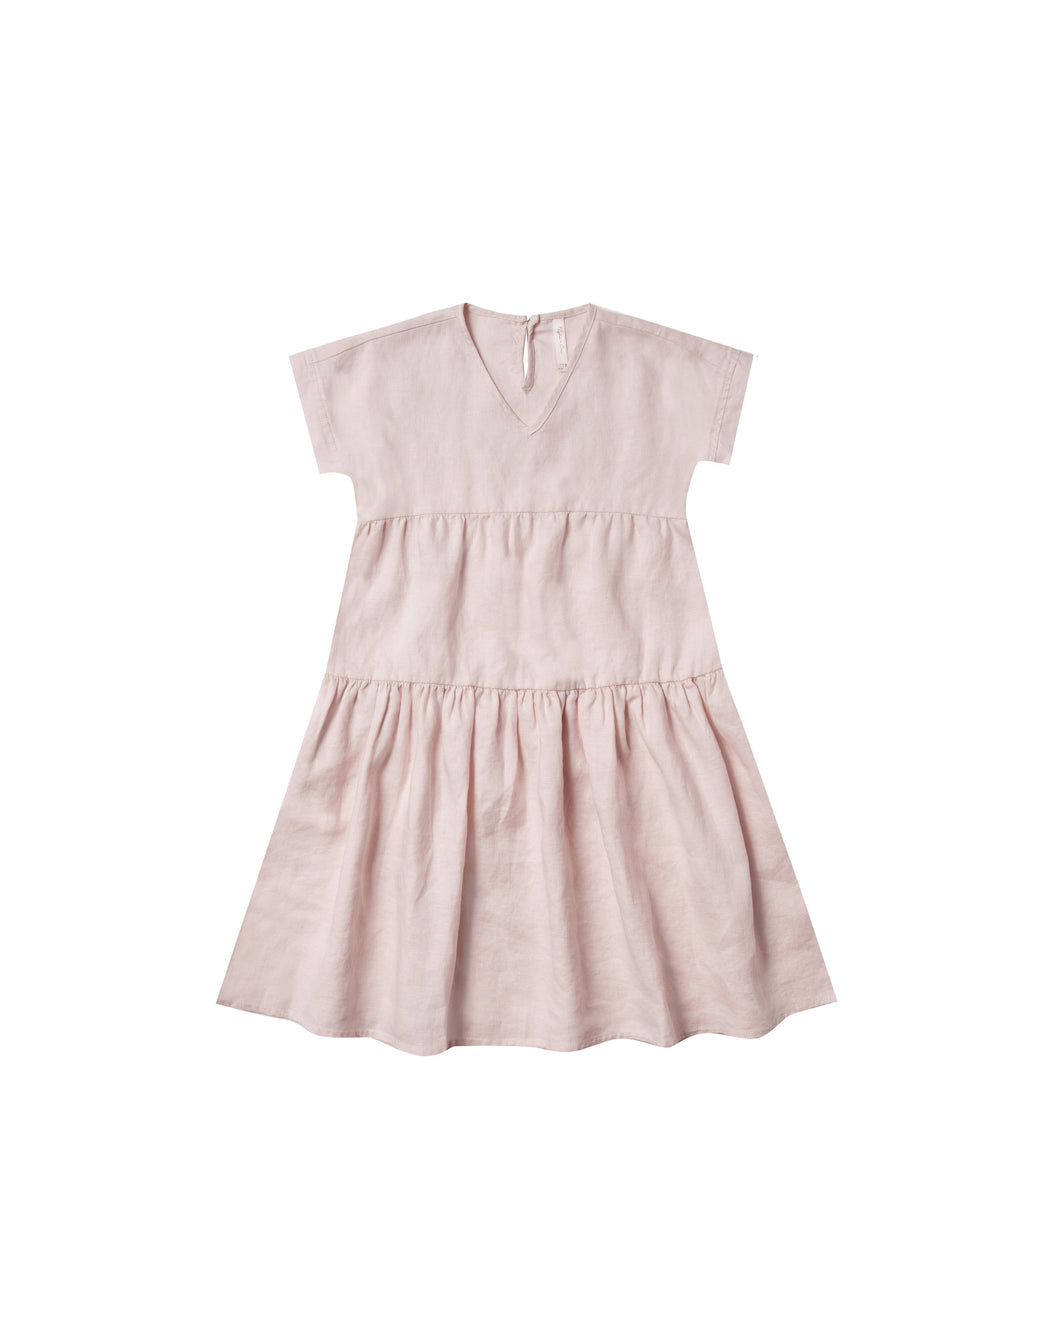 Rylee and Cru | Vienna Girls Dress | Lilac